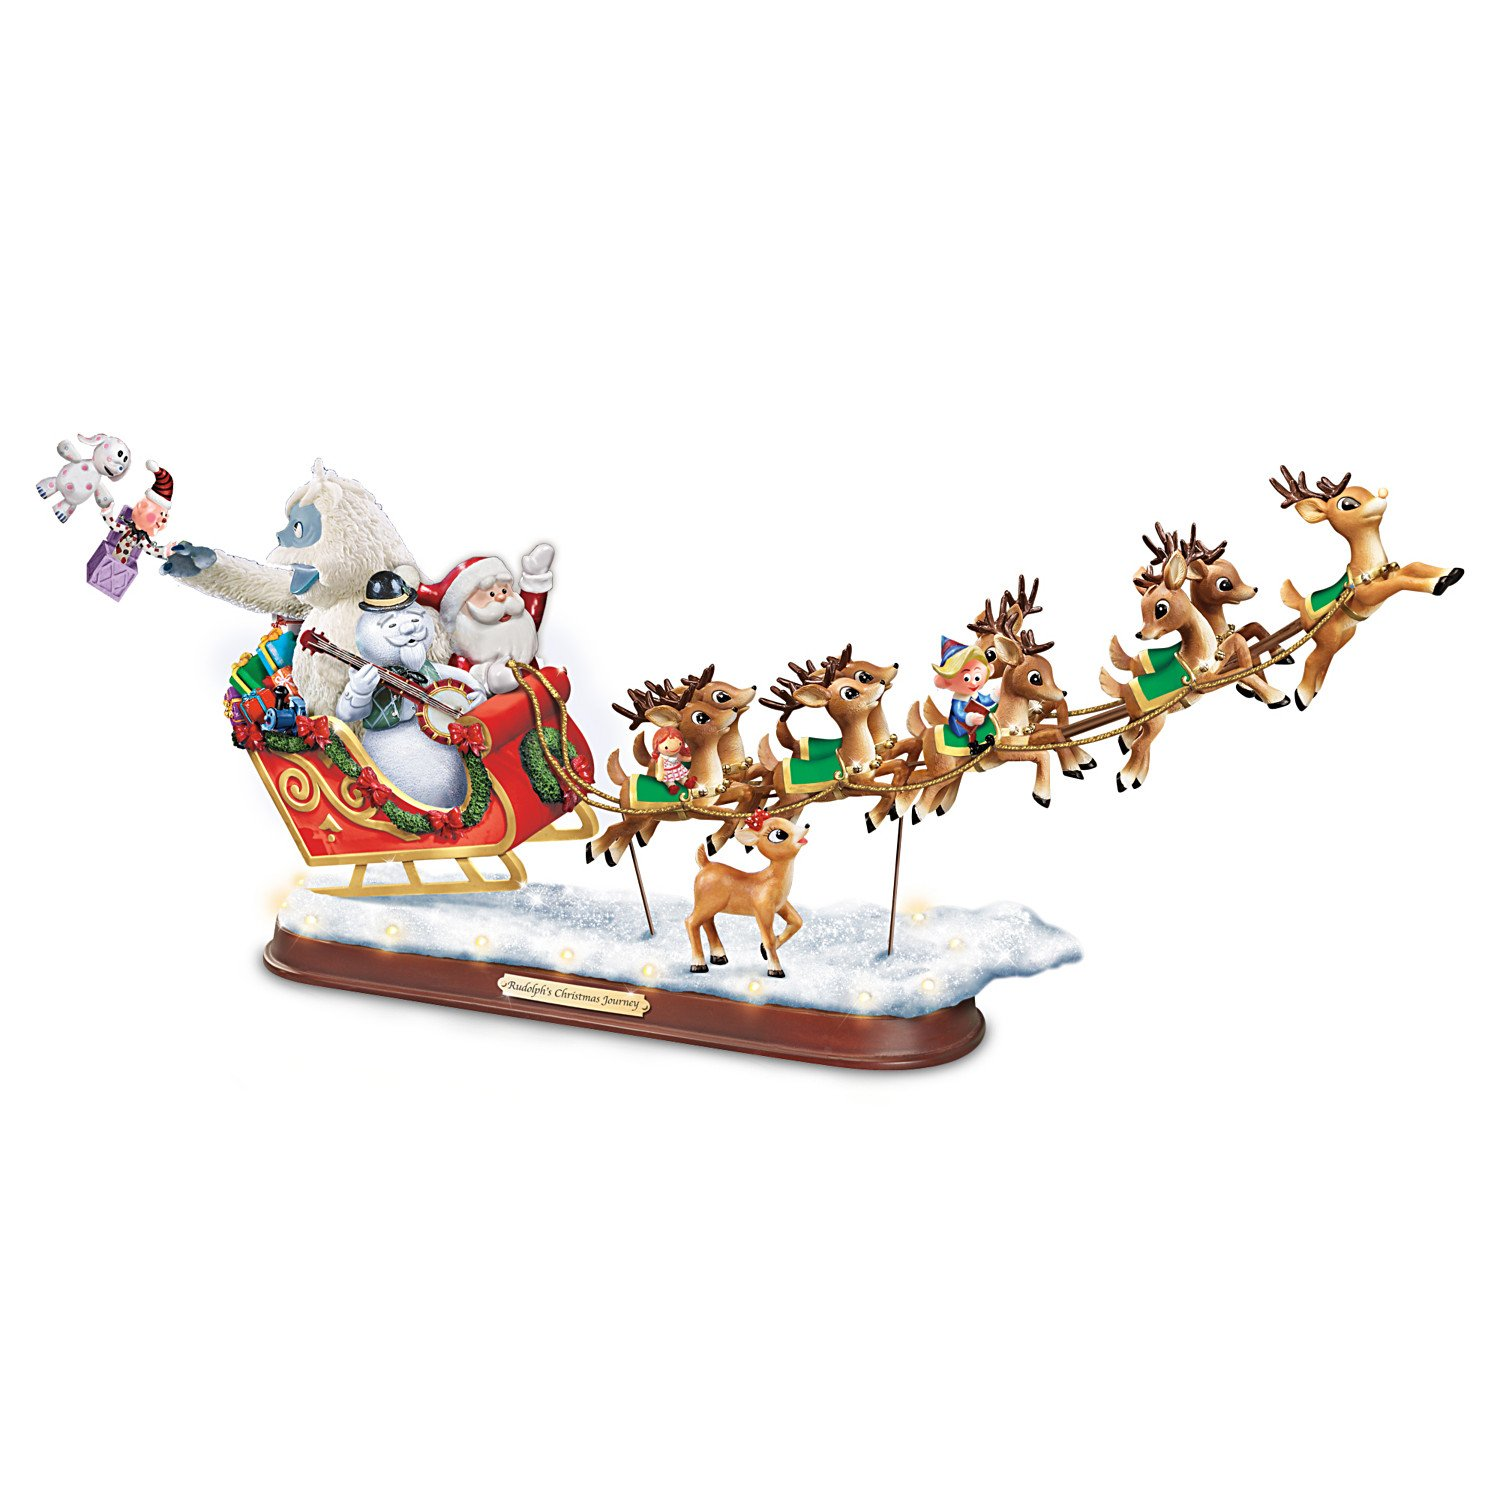 Rudolph the Red-Nosed Reindeer Sculpture: Lighted Musical Holiday Decoration by The Bradford Exchange